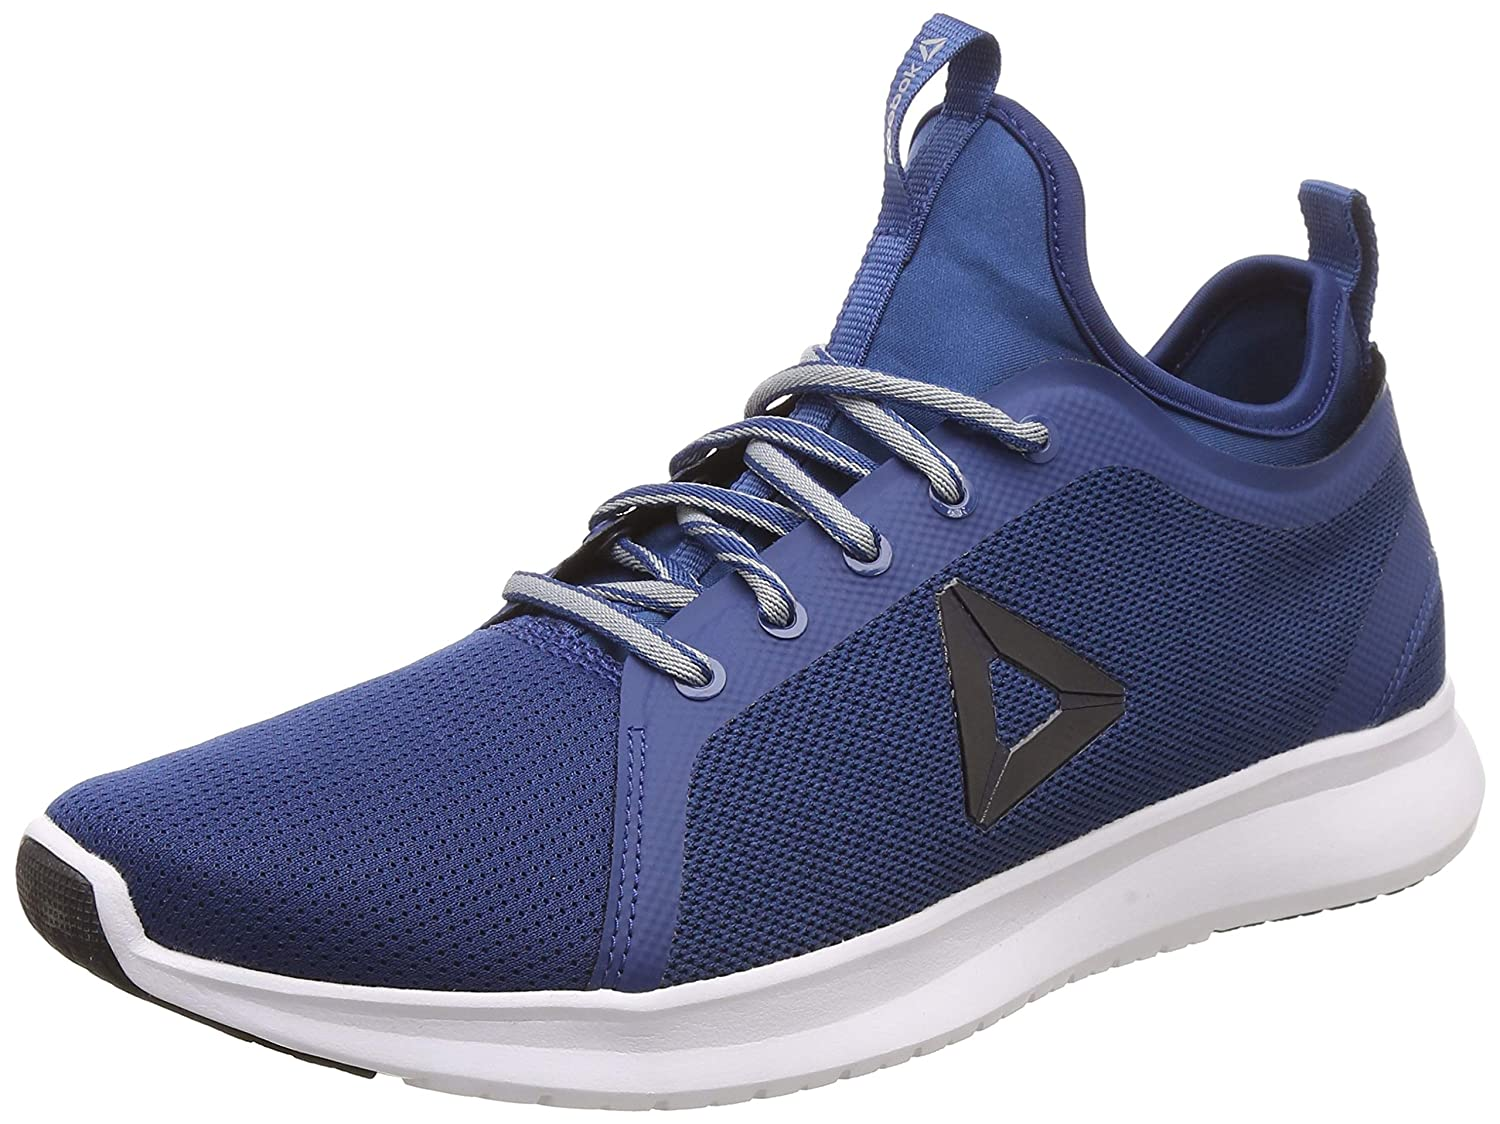 a6c323b36a2 Reebok Men s Pro Lite Runner Lp Running Shoes  Buy Online at Low Prices in  India - Amazon.in